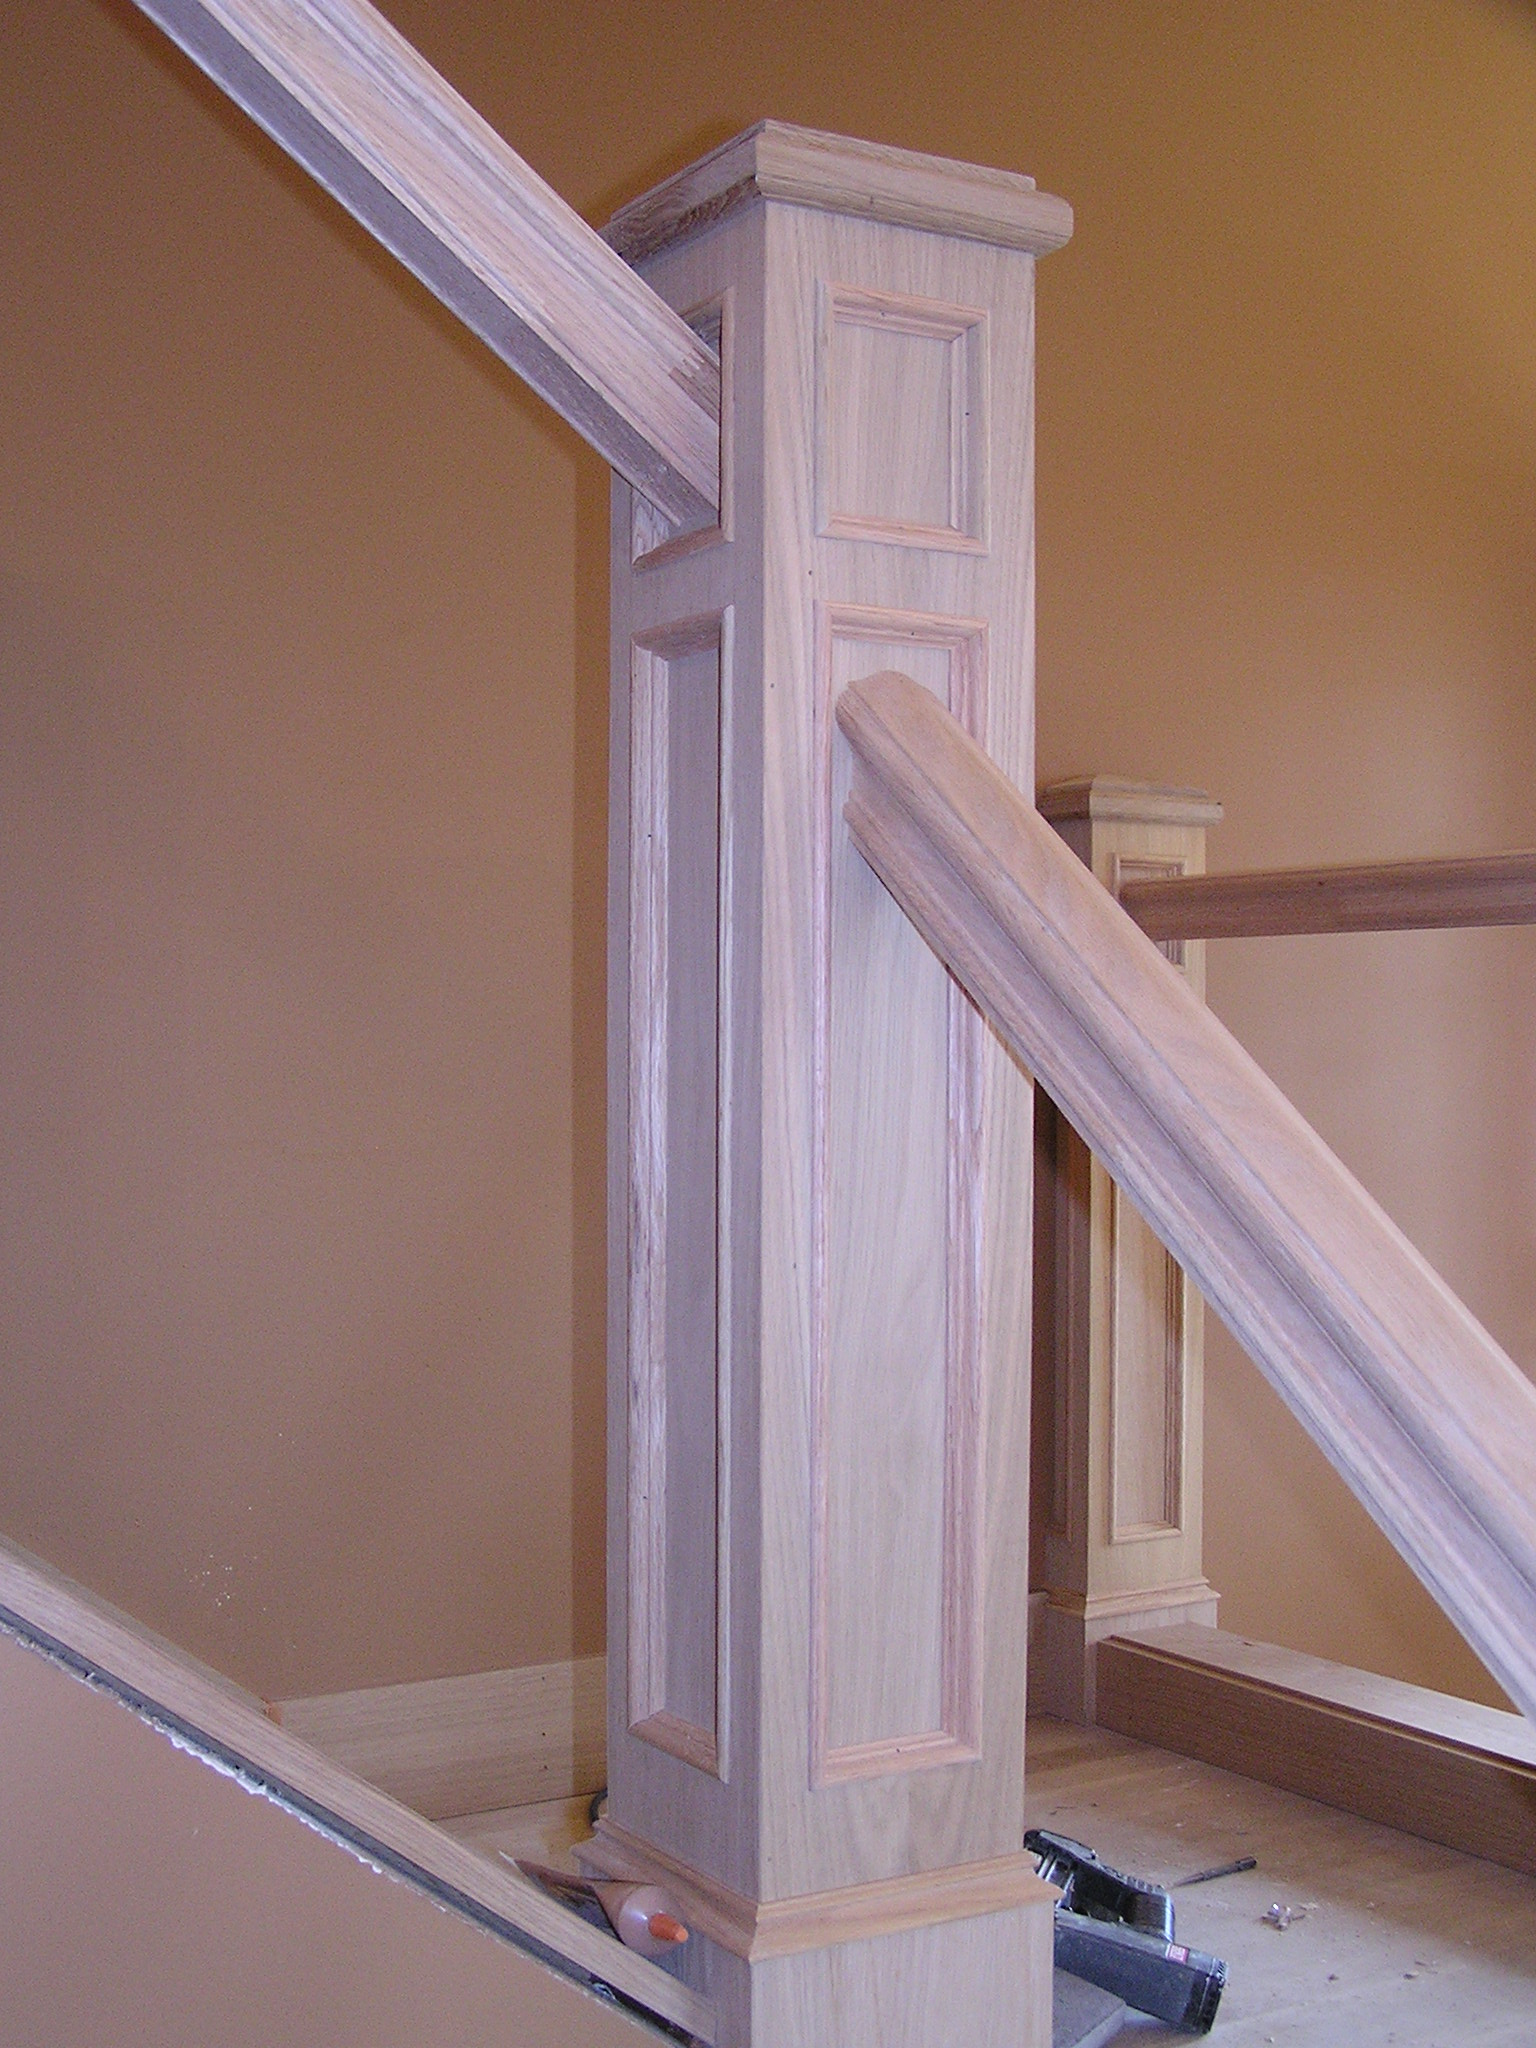 How To Restain Stair Rail | Home Design Ideas